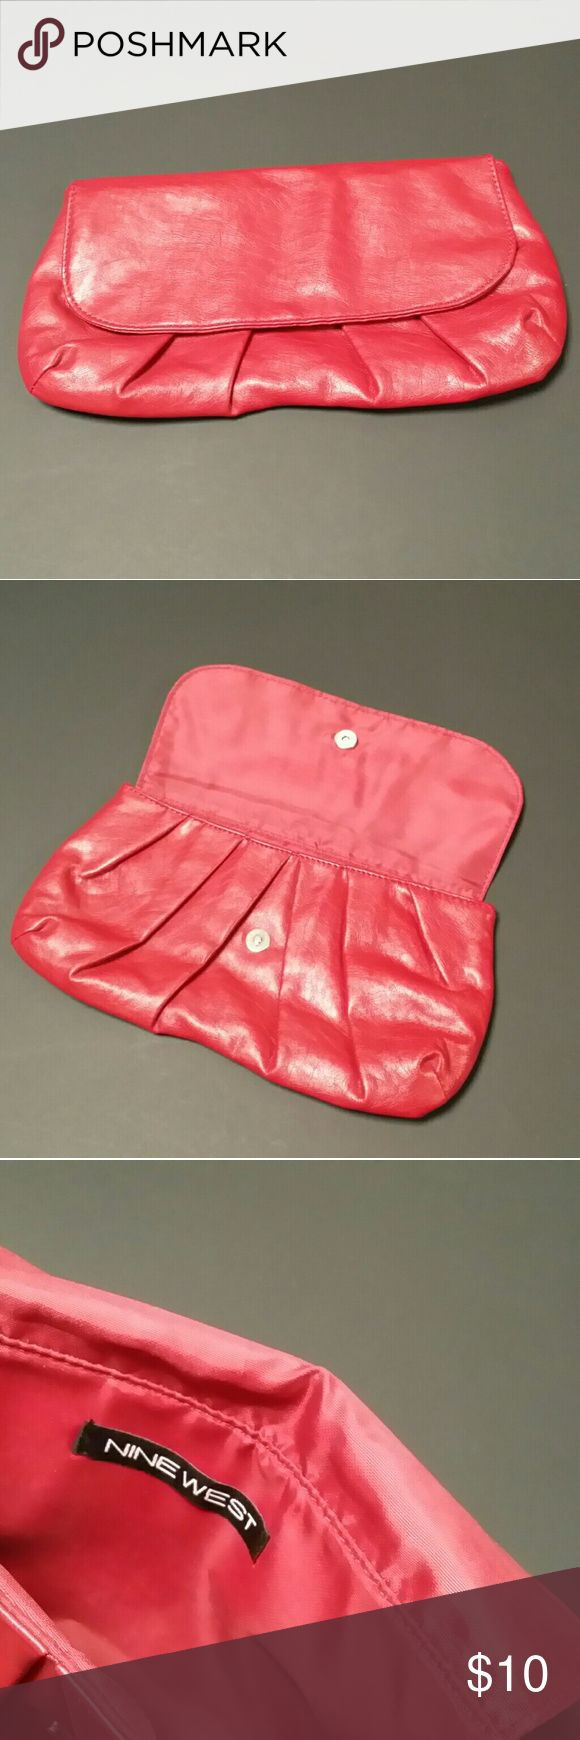 Nine West small red clutch purse This is a small red night on the town clutch purse.  Just big enough for the essentials.  Red Soft leather.  The Brand is Nine West.  VERY GOOD USED CONDITION. Nine West Bags Clutches & Wristlets